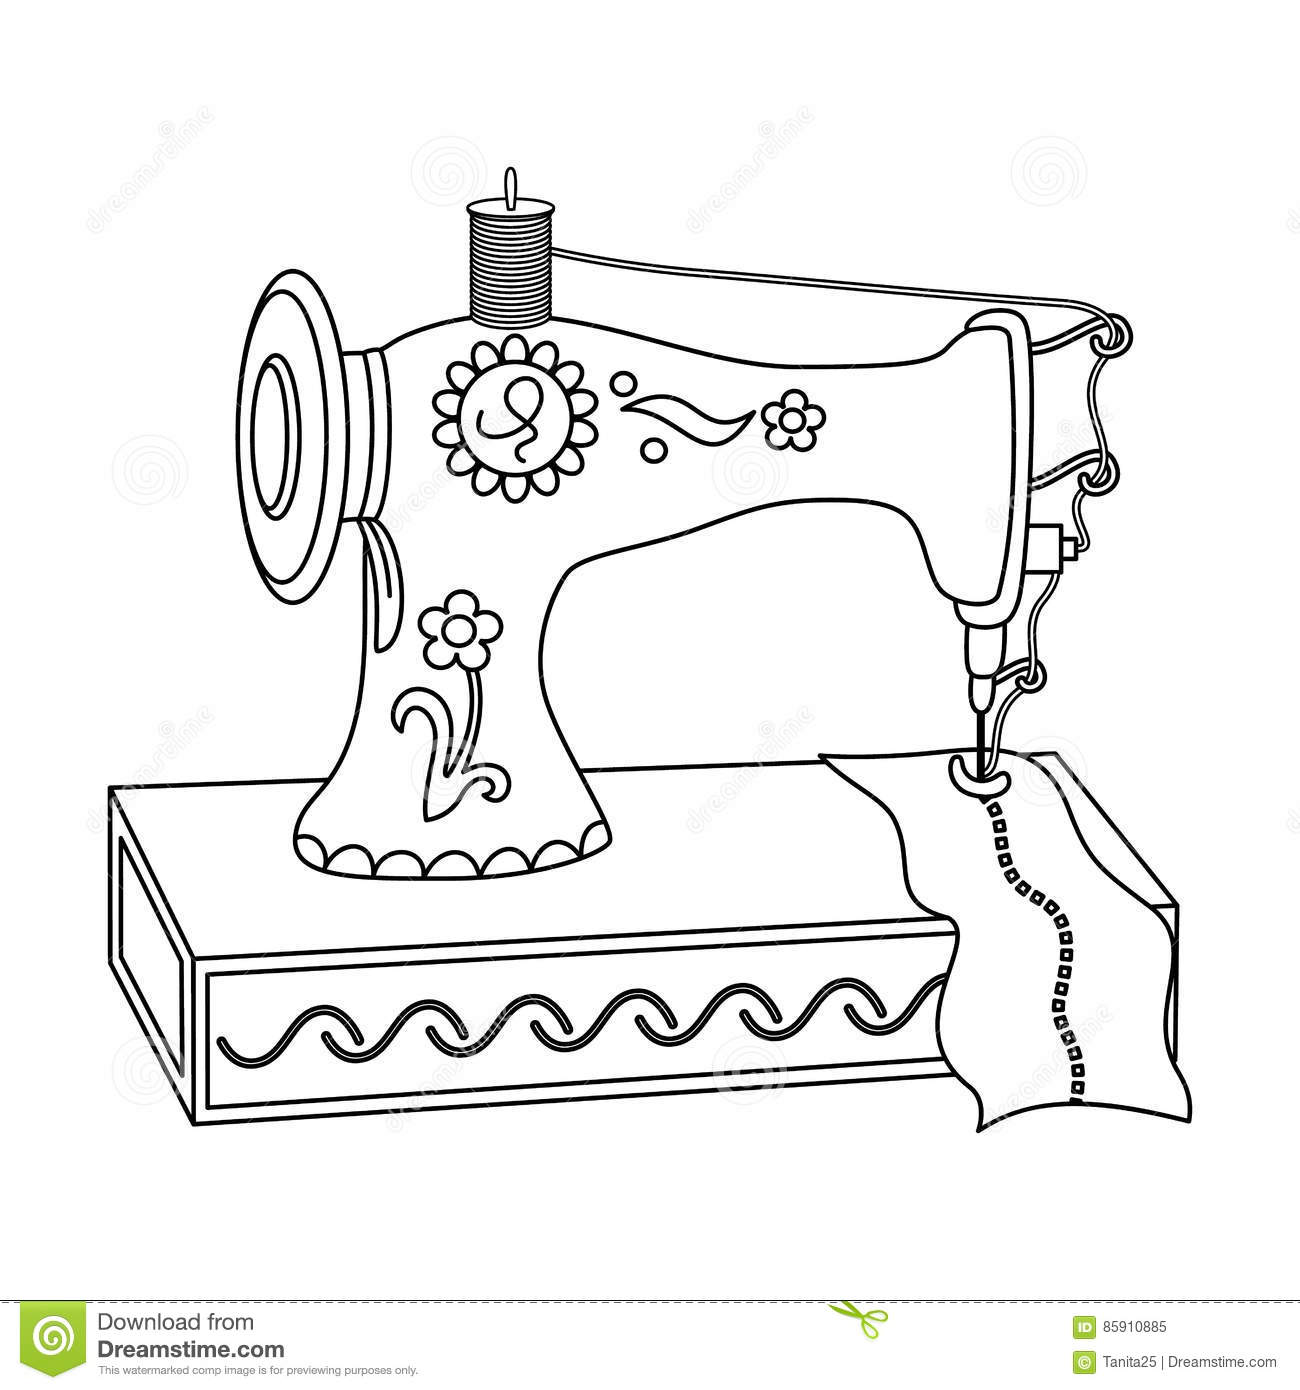 Sewing Machine Clipart Black And White.